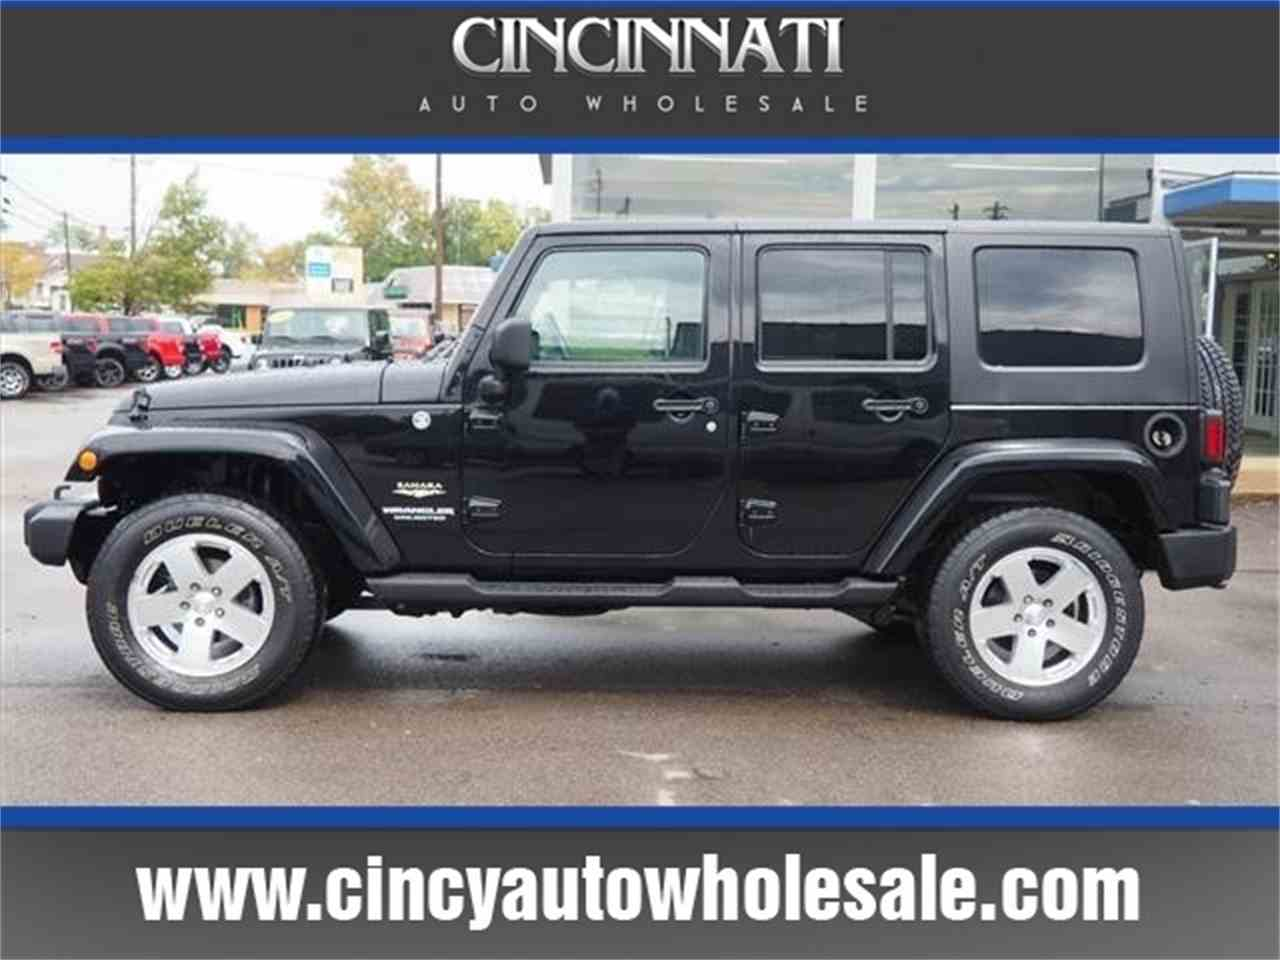 Large Picture of '09 Wrangler - $17,000.00 Offered by Cincinnati Auto Wholesale - LWMR